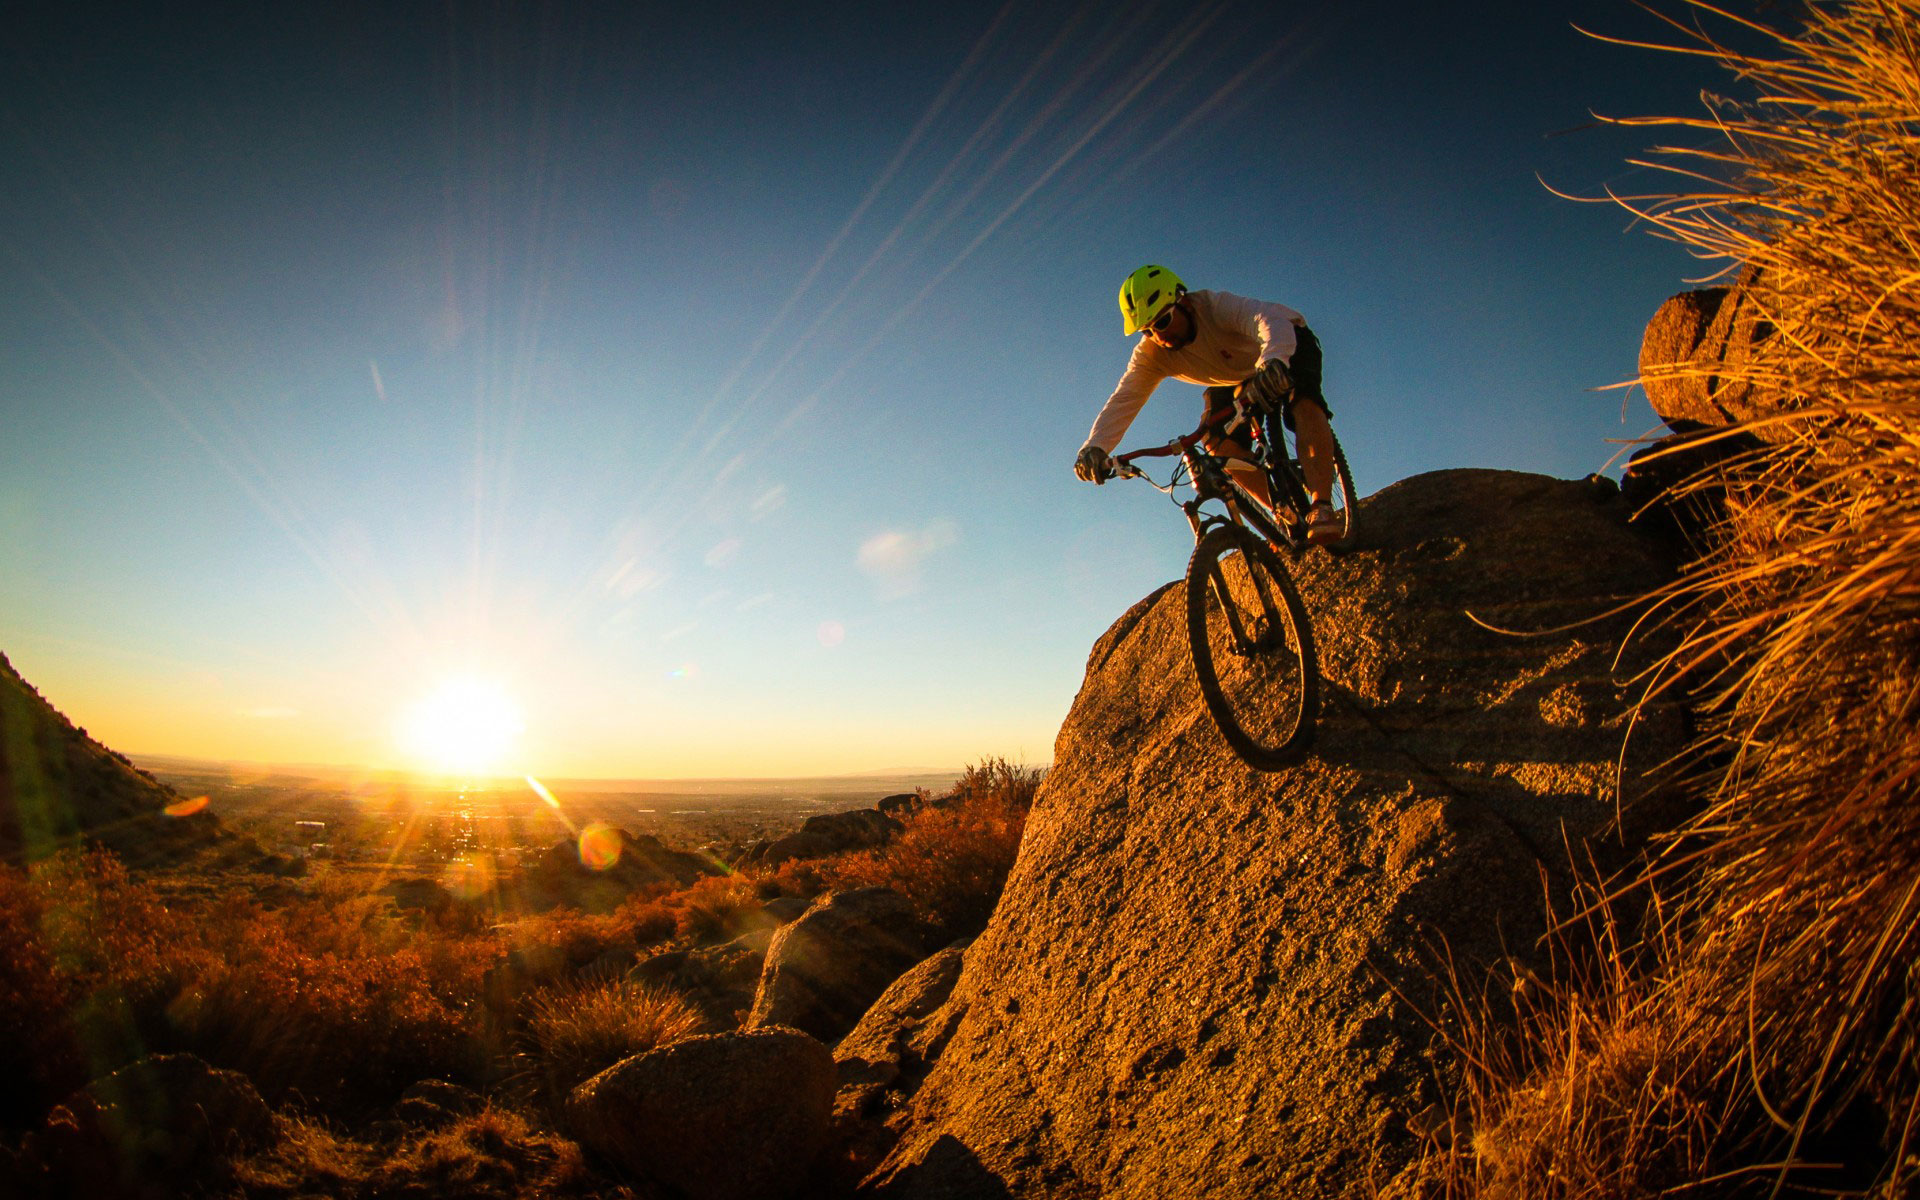 mountain biking hd widescreen wallpapers 1920x1200 1920x1200